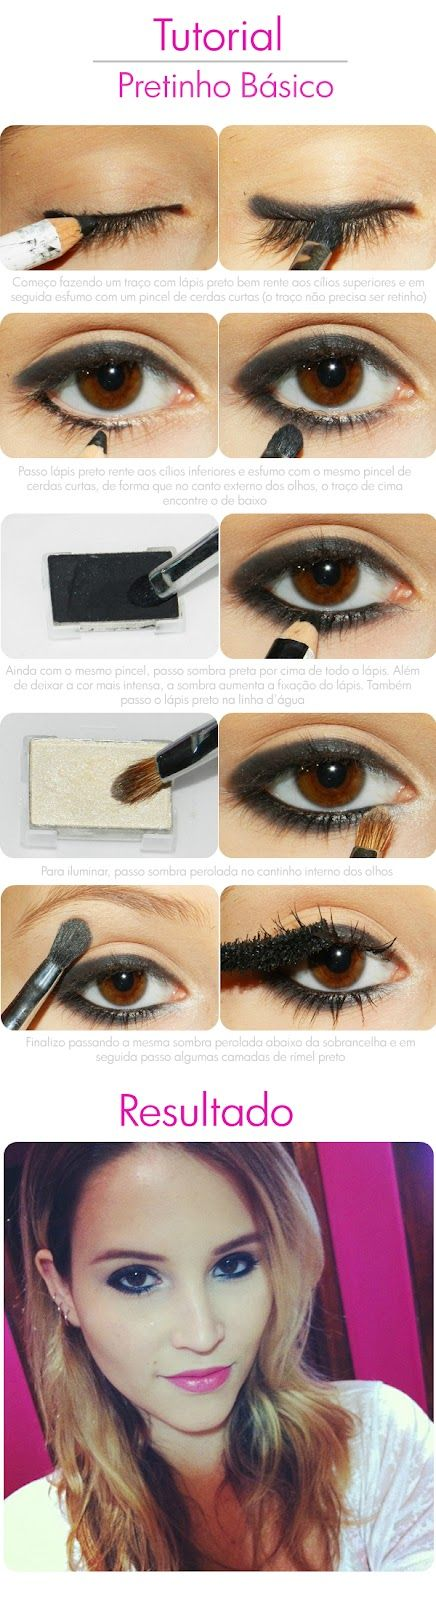 Cute for a casual date or you could spice it up with a smokey eyeshadow for a sexy night look. Eyeshadow on top of eyeliner makes the eyeliner stay put longer! Also a bit of Urban Decay primer wouldn't hurt either! ;)